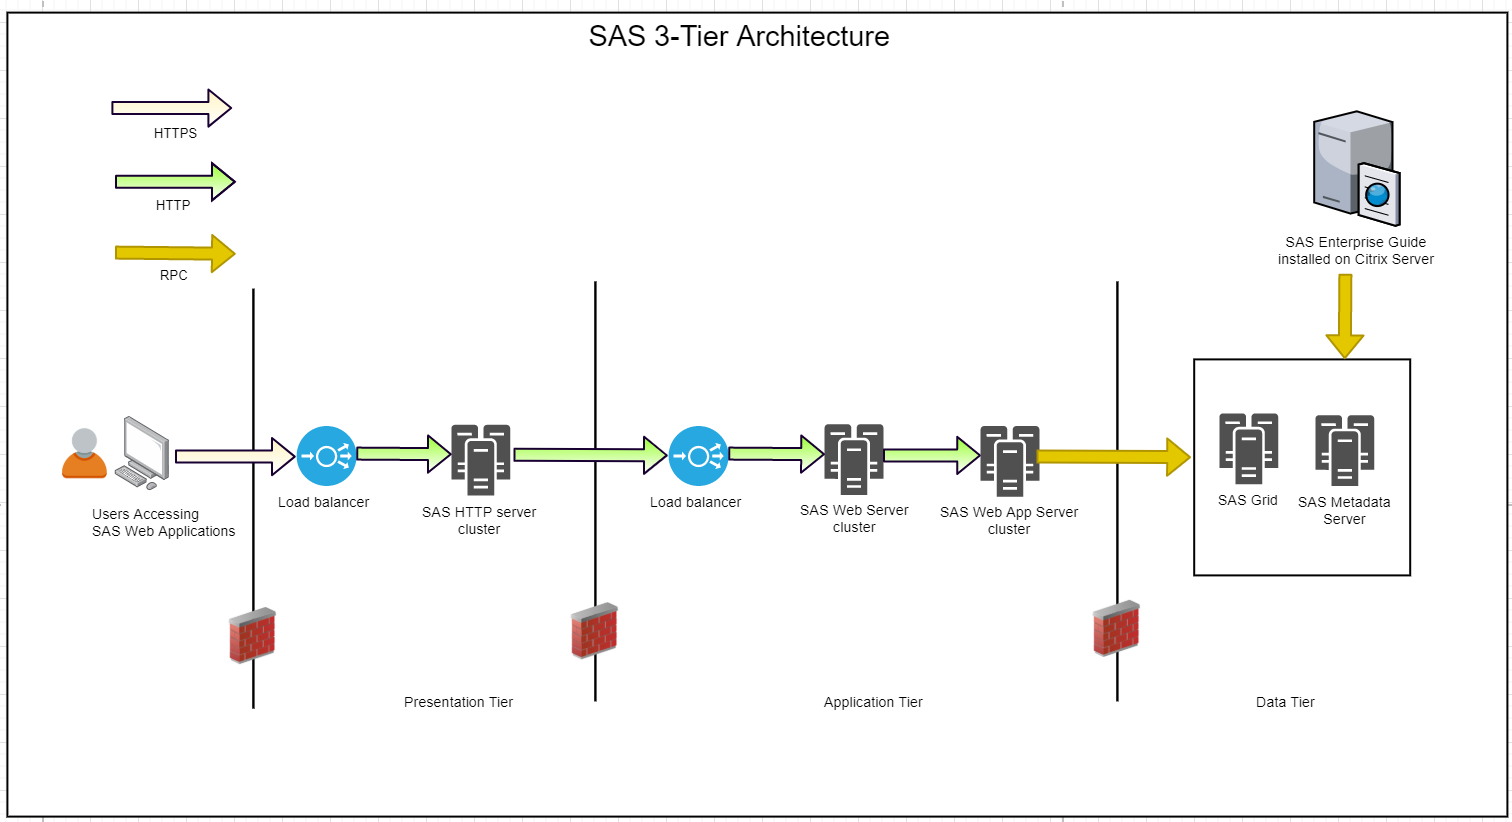 SAS 3-Tier Architecture